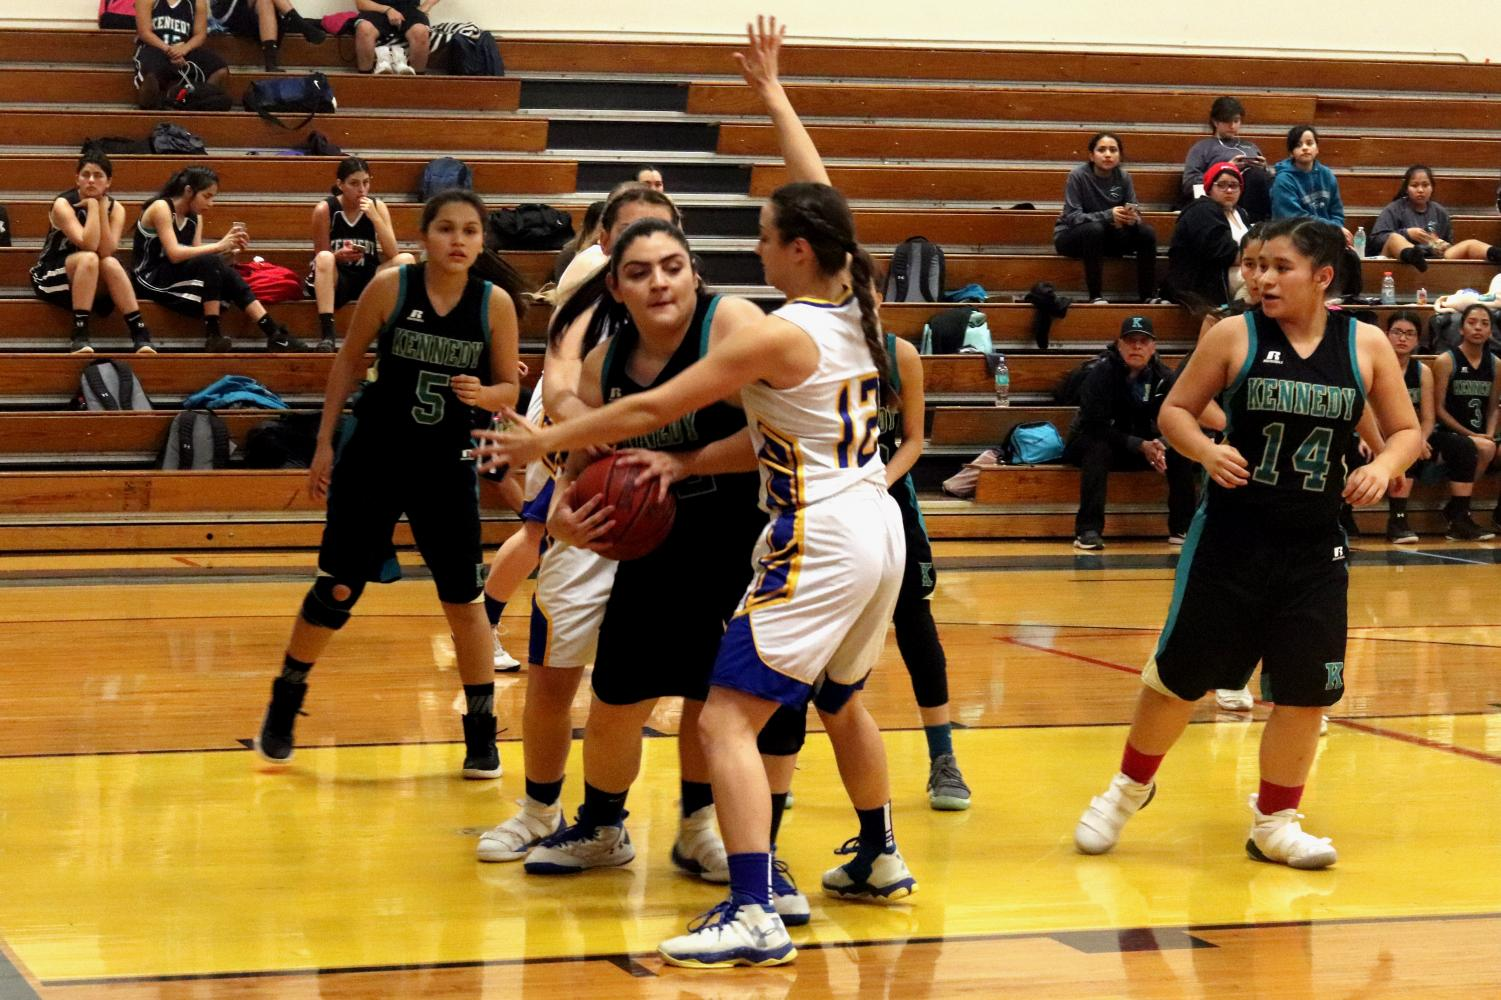 Morgan Pulido blocking a Kennedy player from passing the ball.